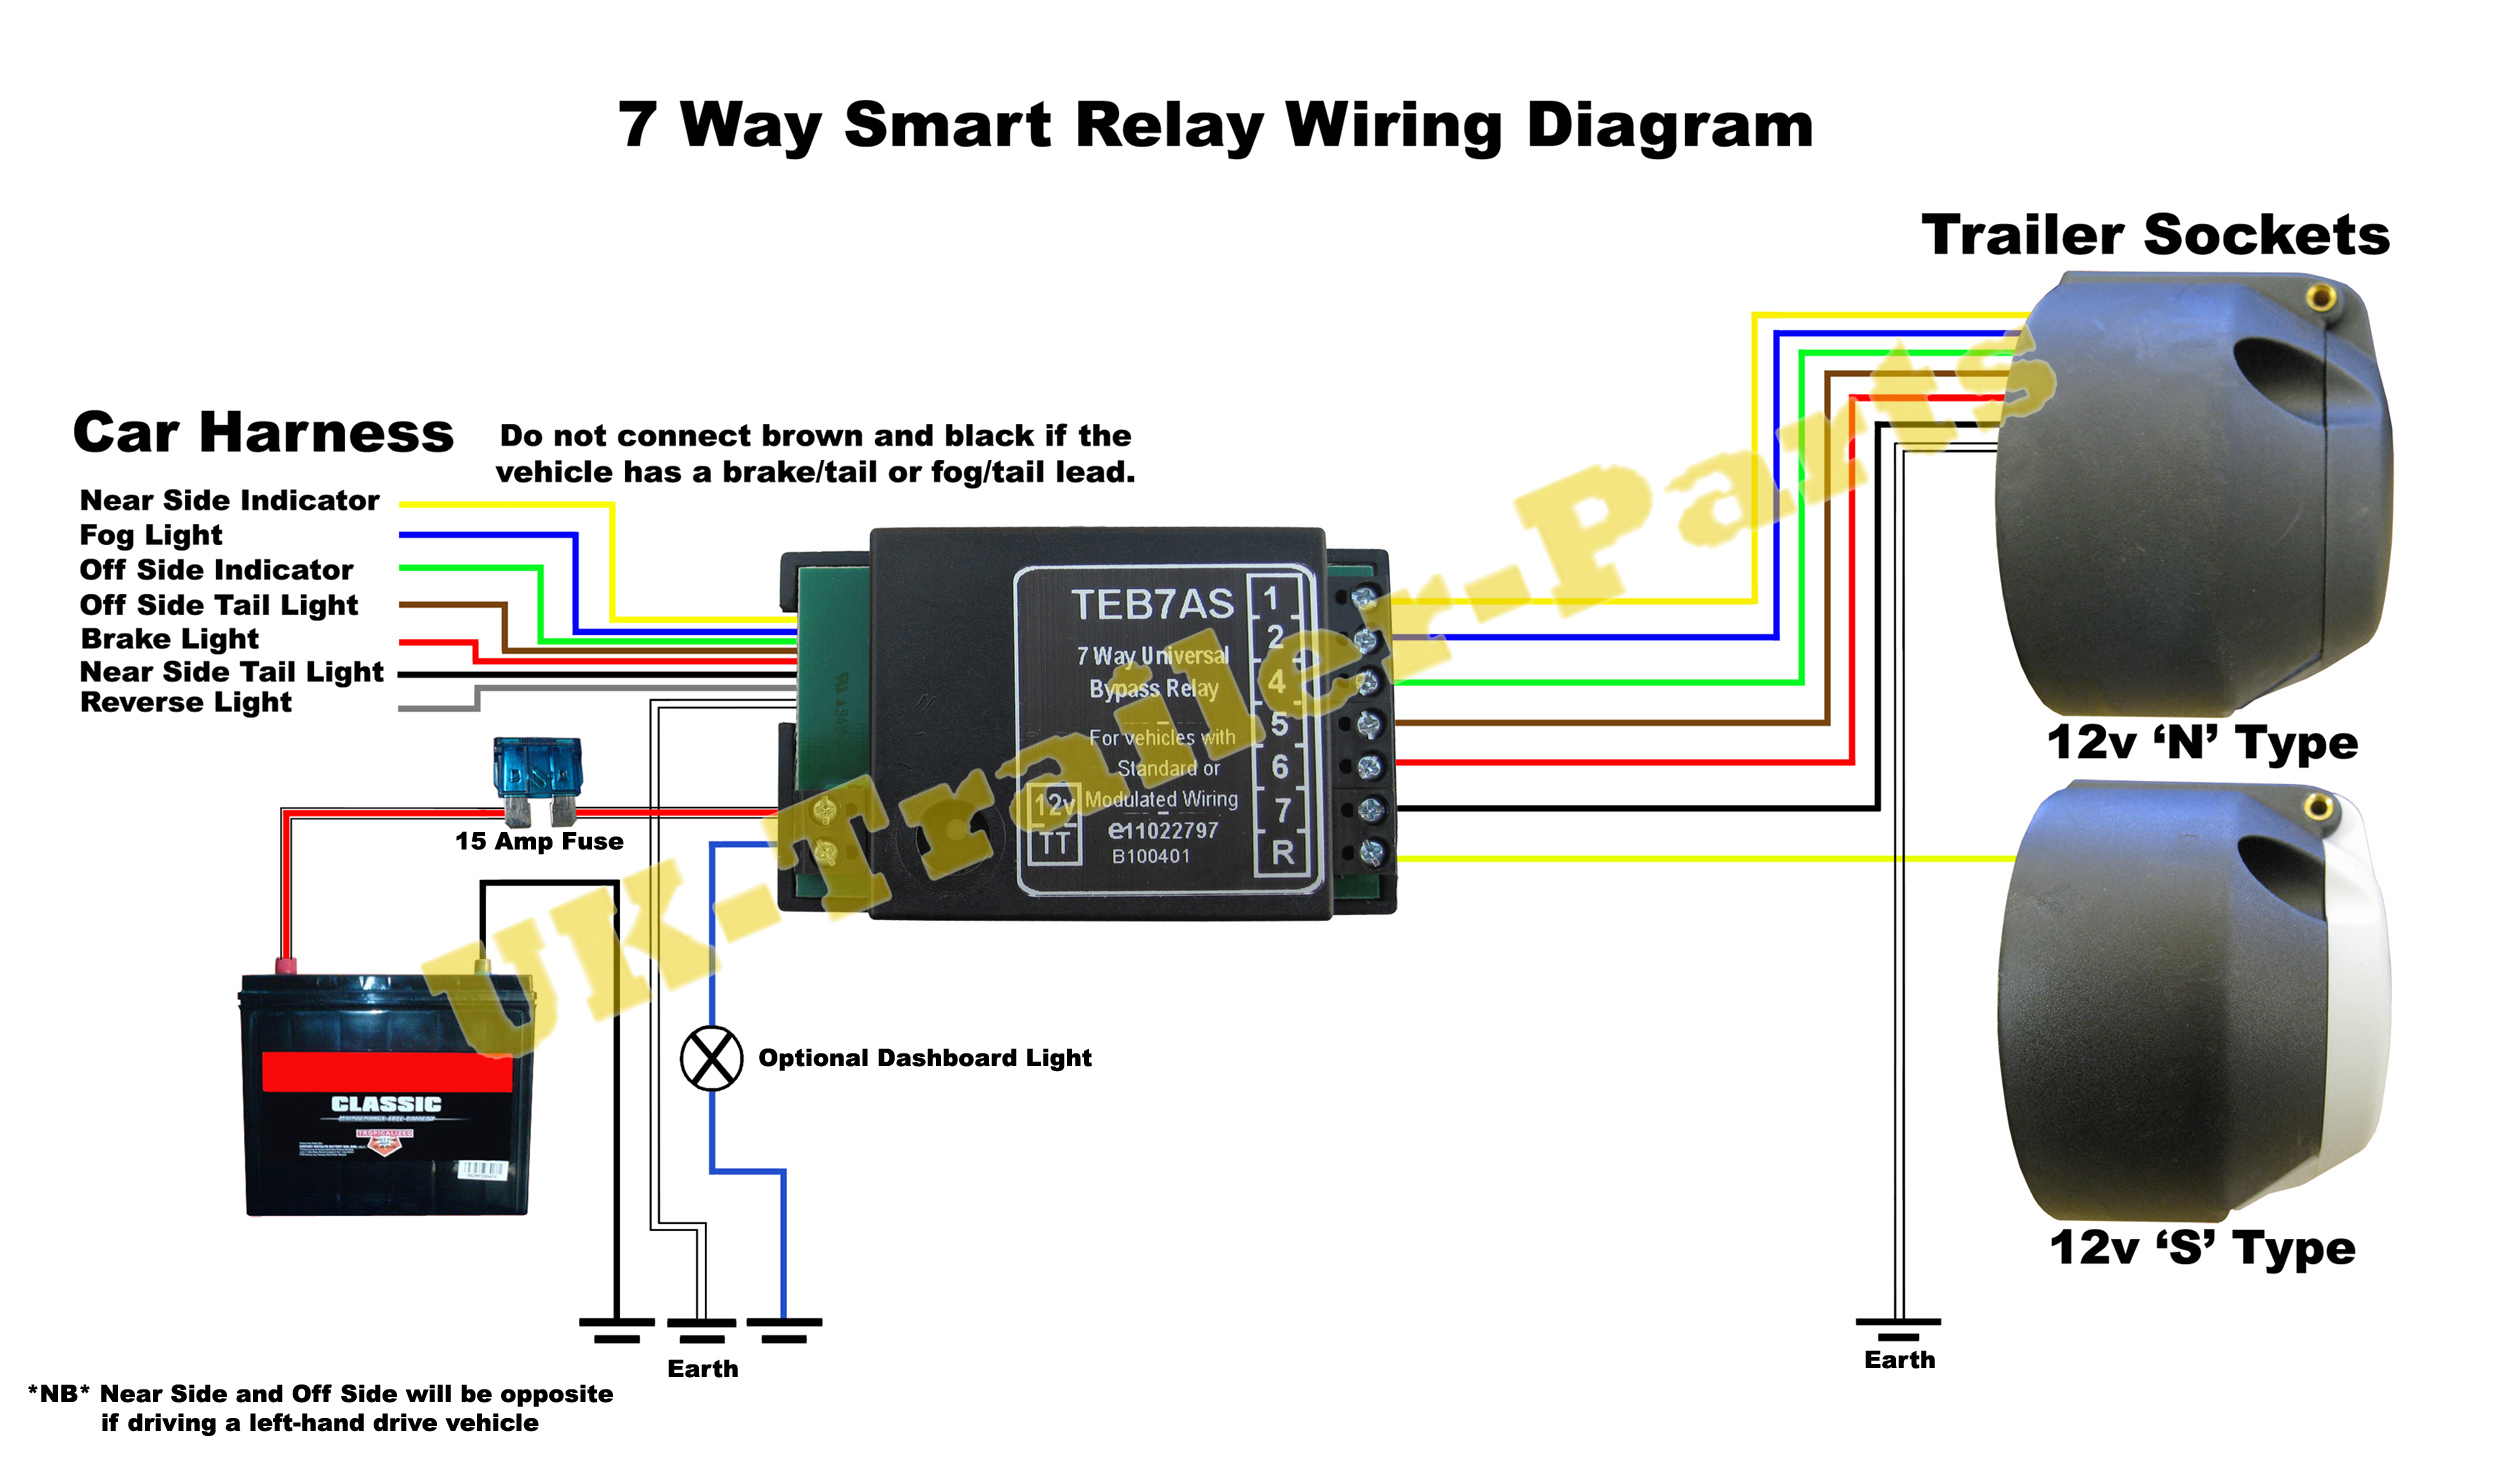 7 way universal bypass relay wiring diagram uk trailer parts cheapraybanclubmaster